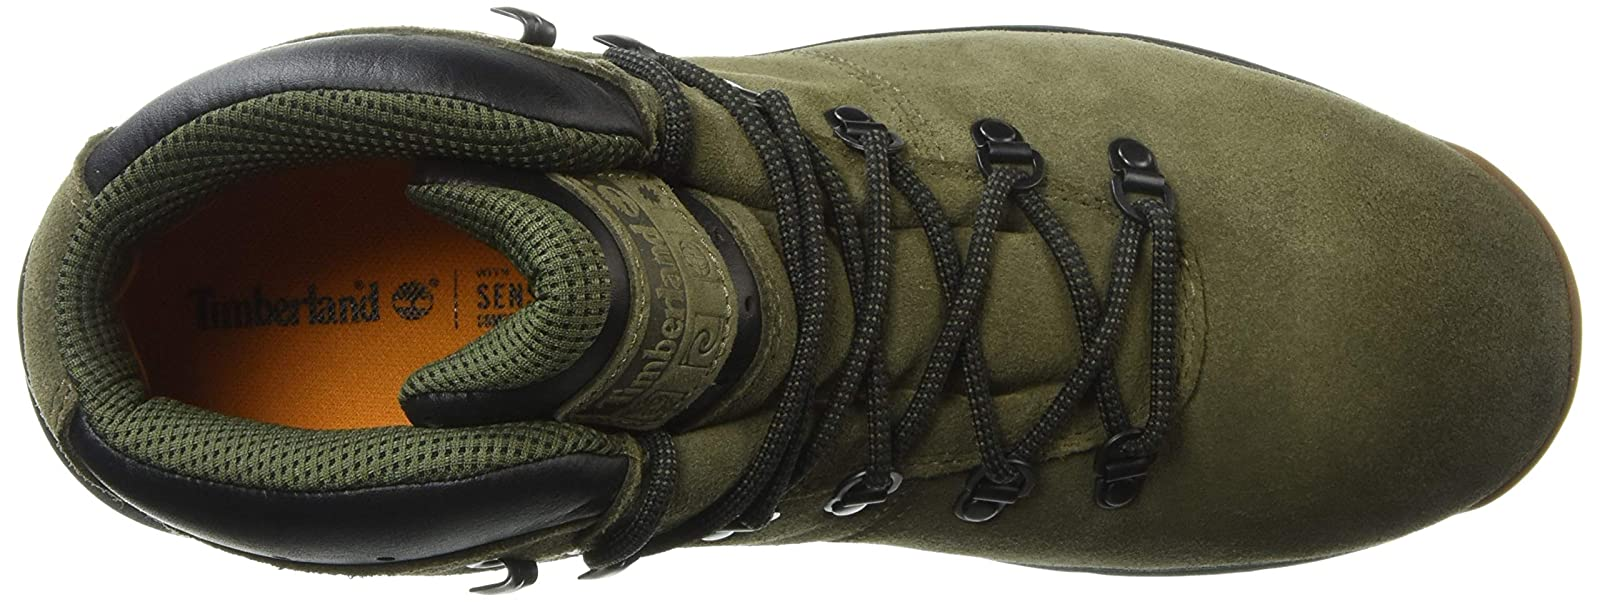 Timberland Men's World Hiker Mid Ankle TB0A1RJWA58 - 7